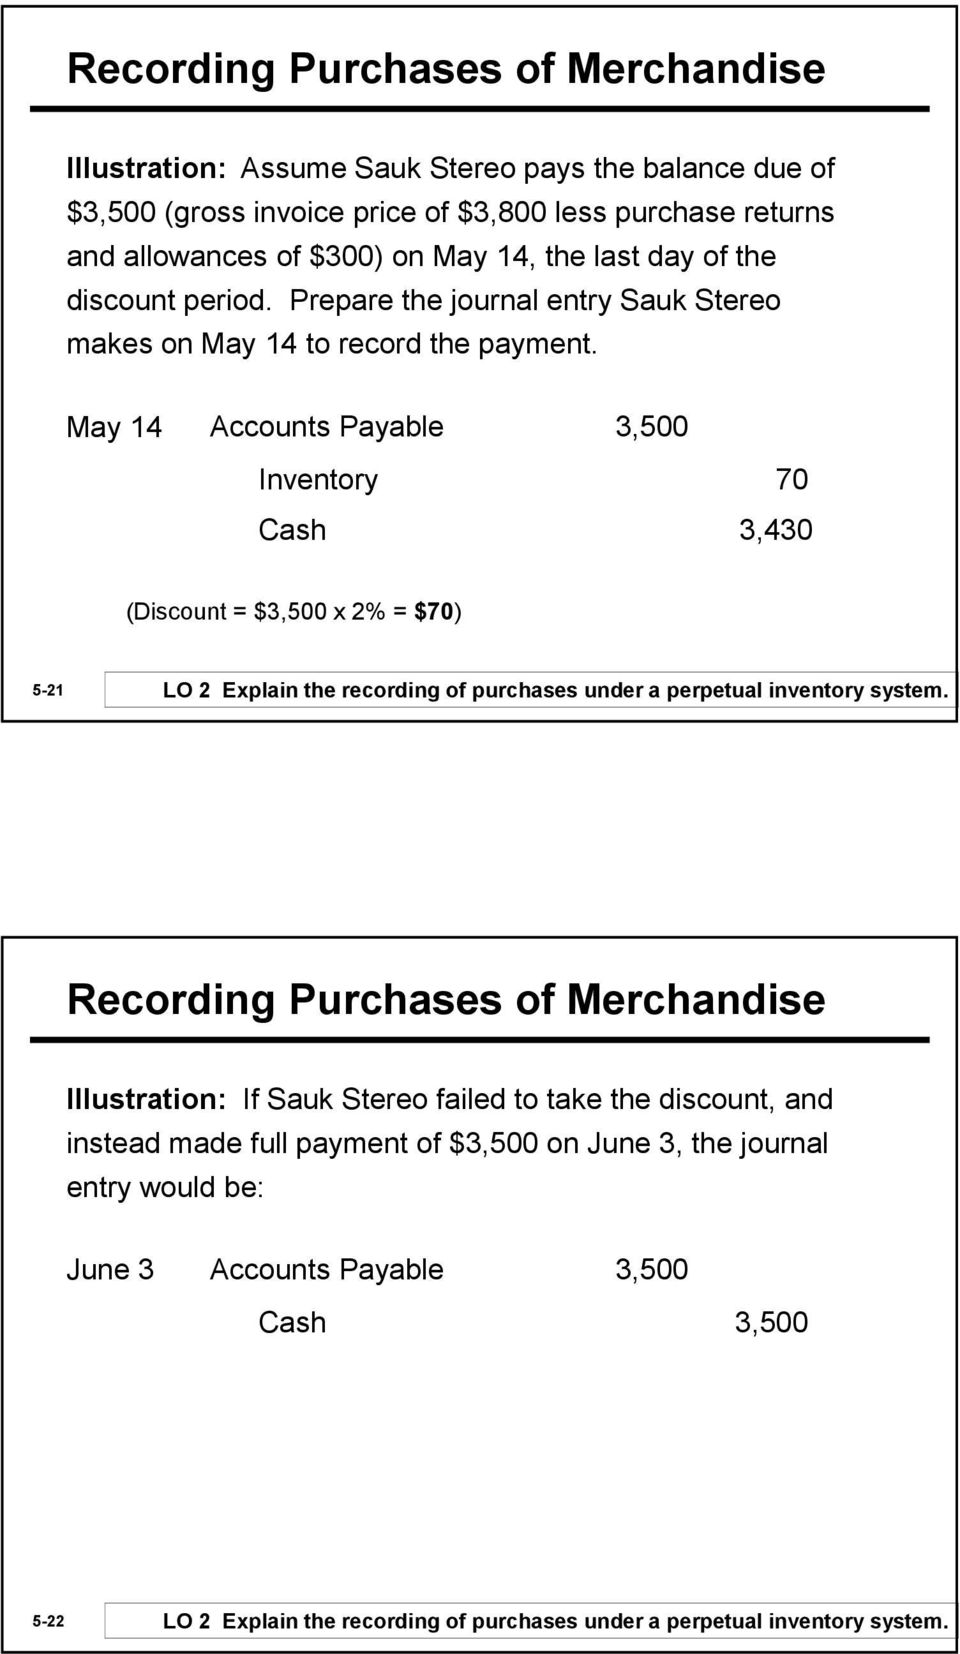 May 14 Accounts Payable 3,500 Inventory 70 Cash 3,430 (Discount = $3,500 x 2% = $70) 5-21 LO 2 Explain the recording of purchases under a perpetual inventory system.